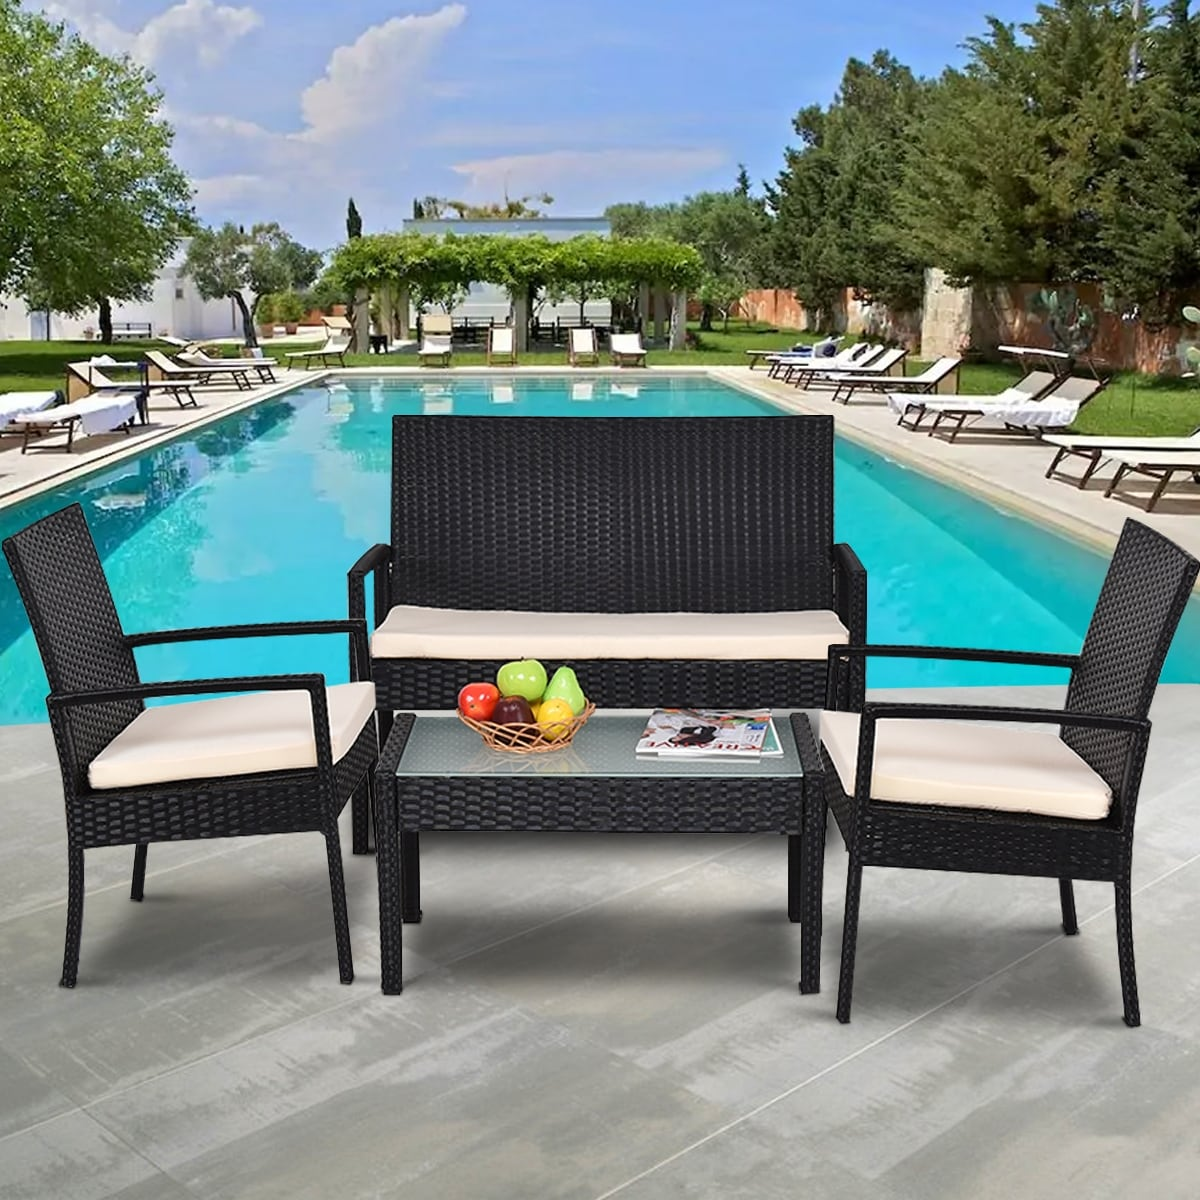 Shop Costway 4 PCS Outdoor Patio Furniture Set Table Chair Sofa Cushioned  Seat Garden - Free Shipping Today - Overstock.com - 16088556 - Shop Costway 4 PCS Outdoor Patio Furniture Set Table Chair Sofa